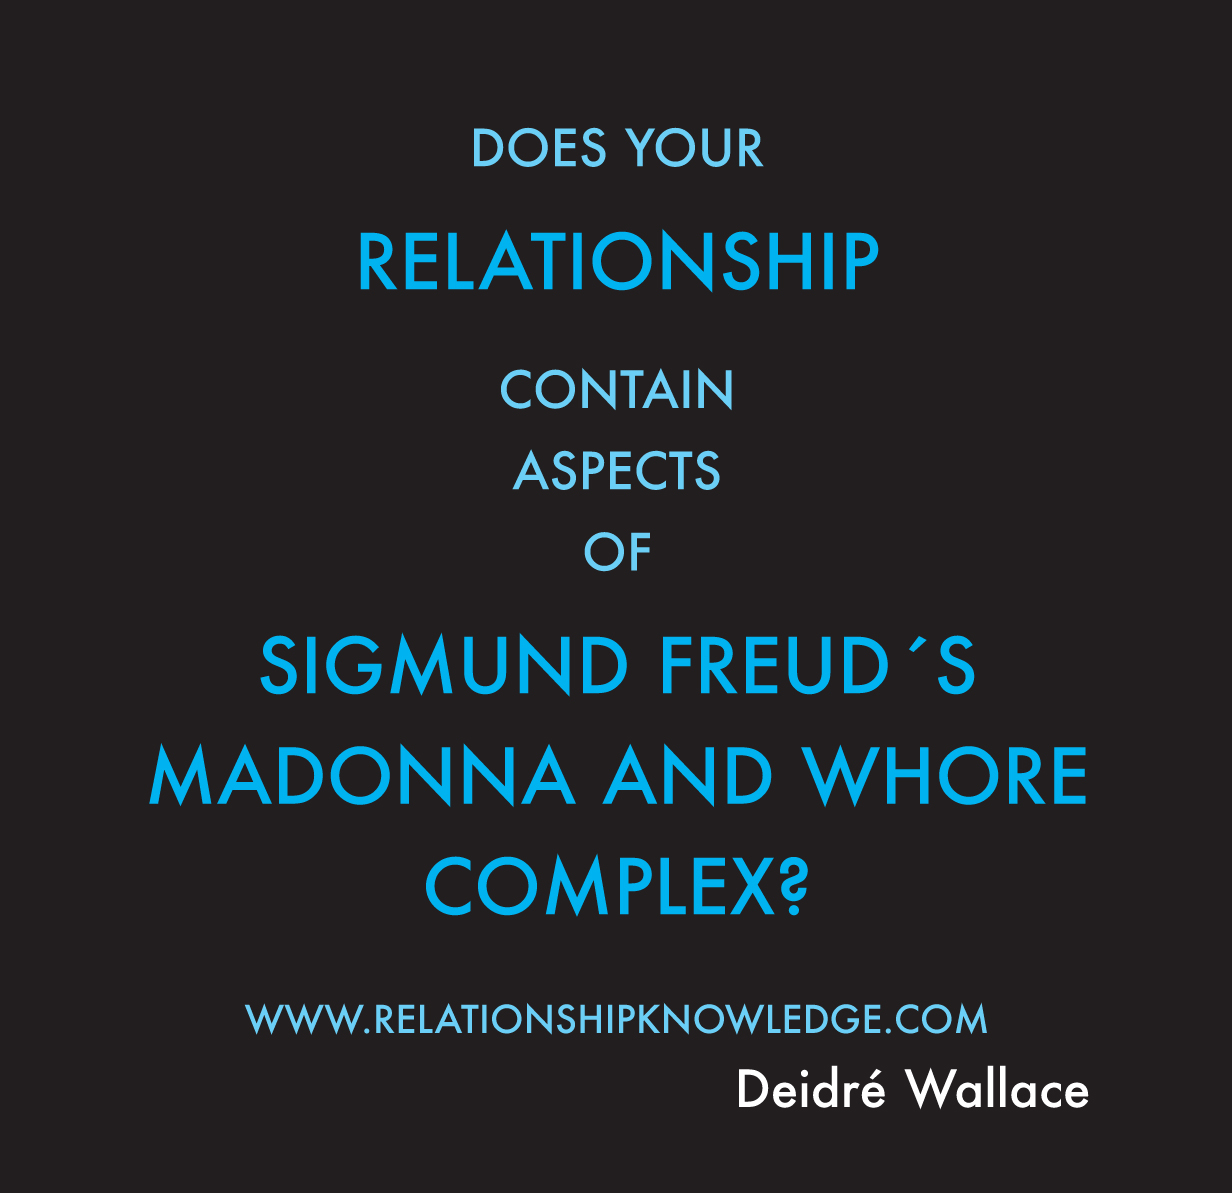 THE MADONNA AND WHORE COMPLEX. | Relationship Knowledge - The Deidré Wallace System